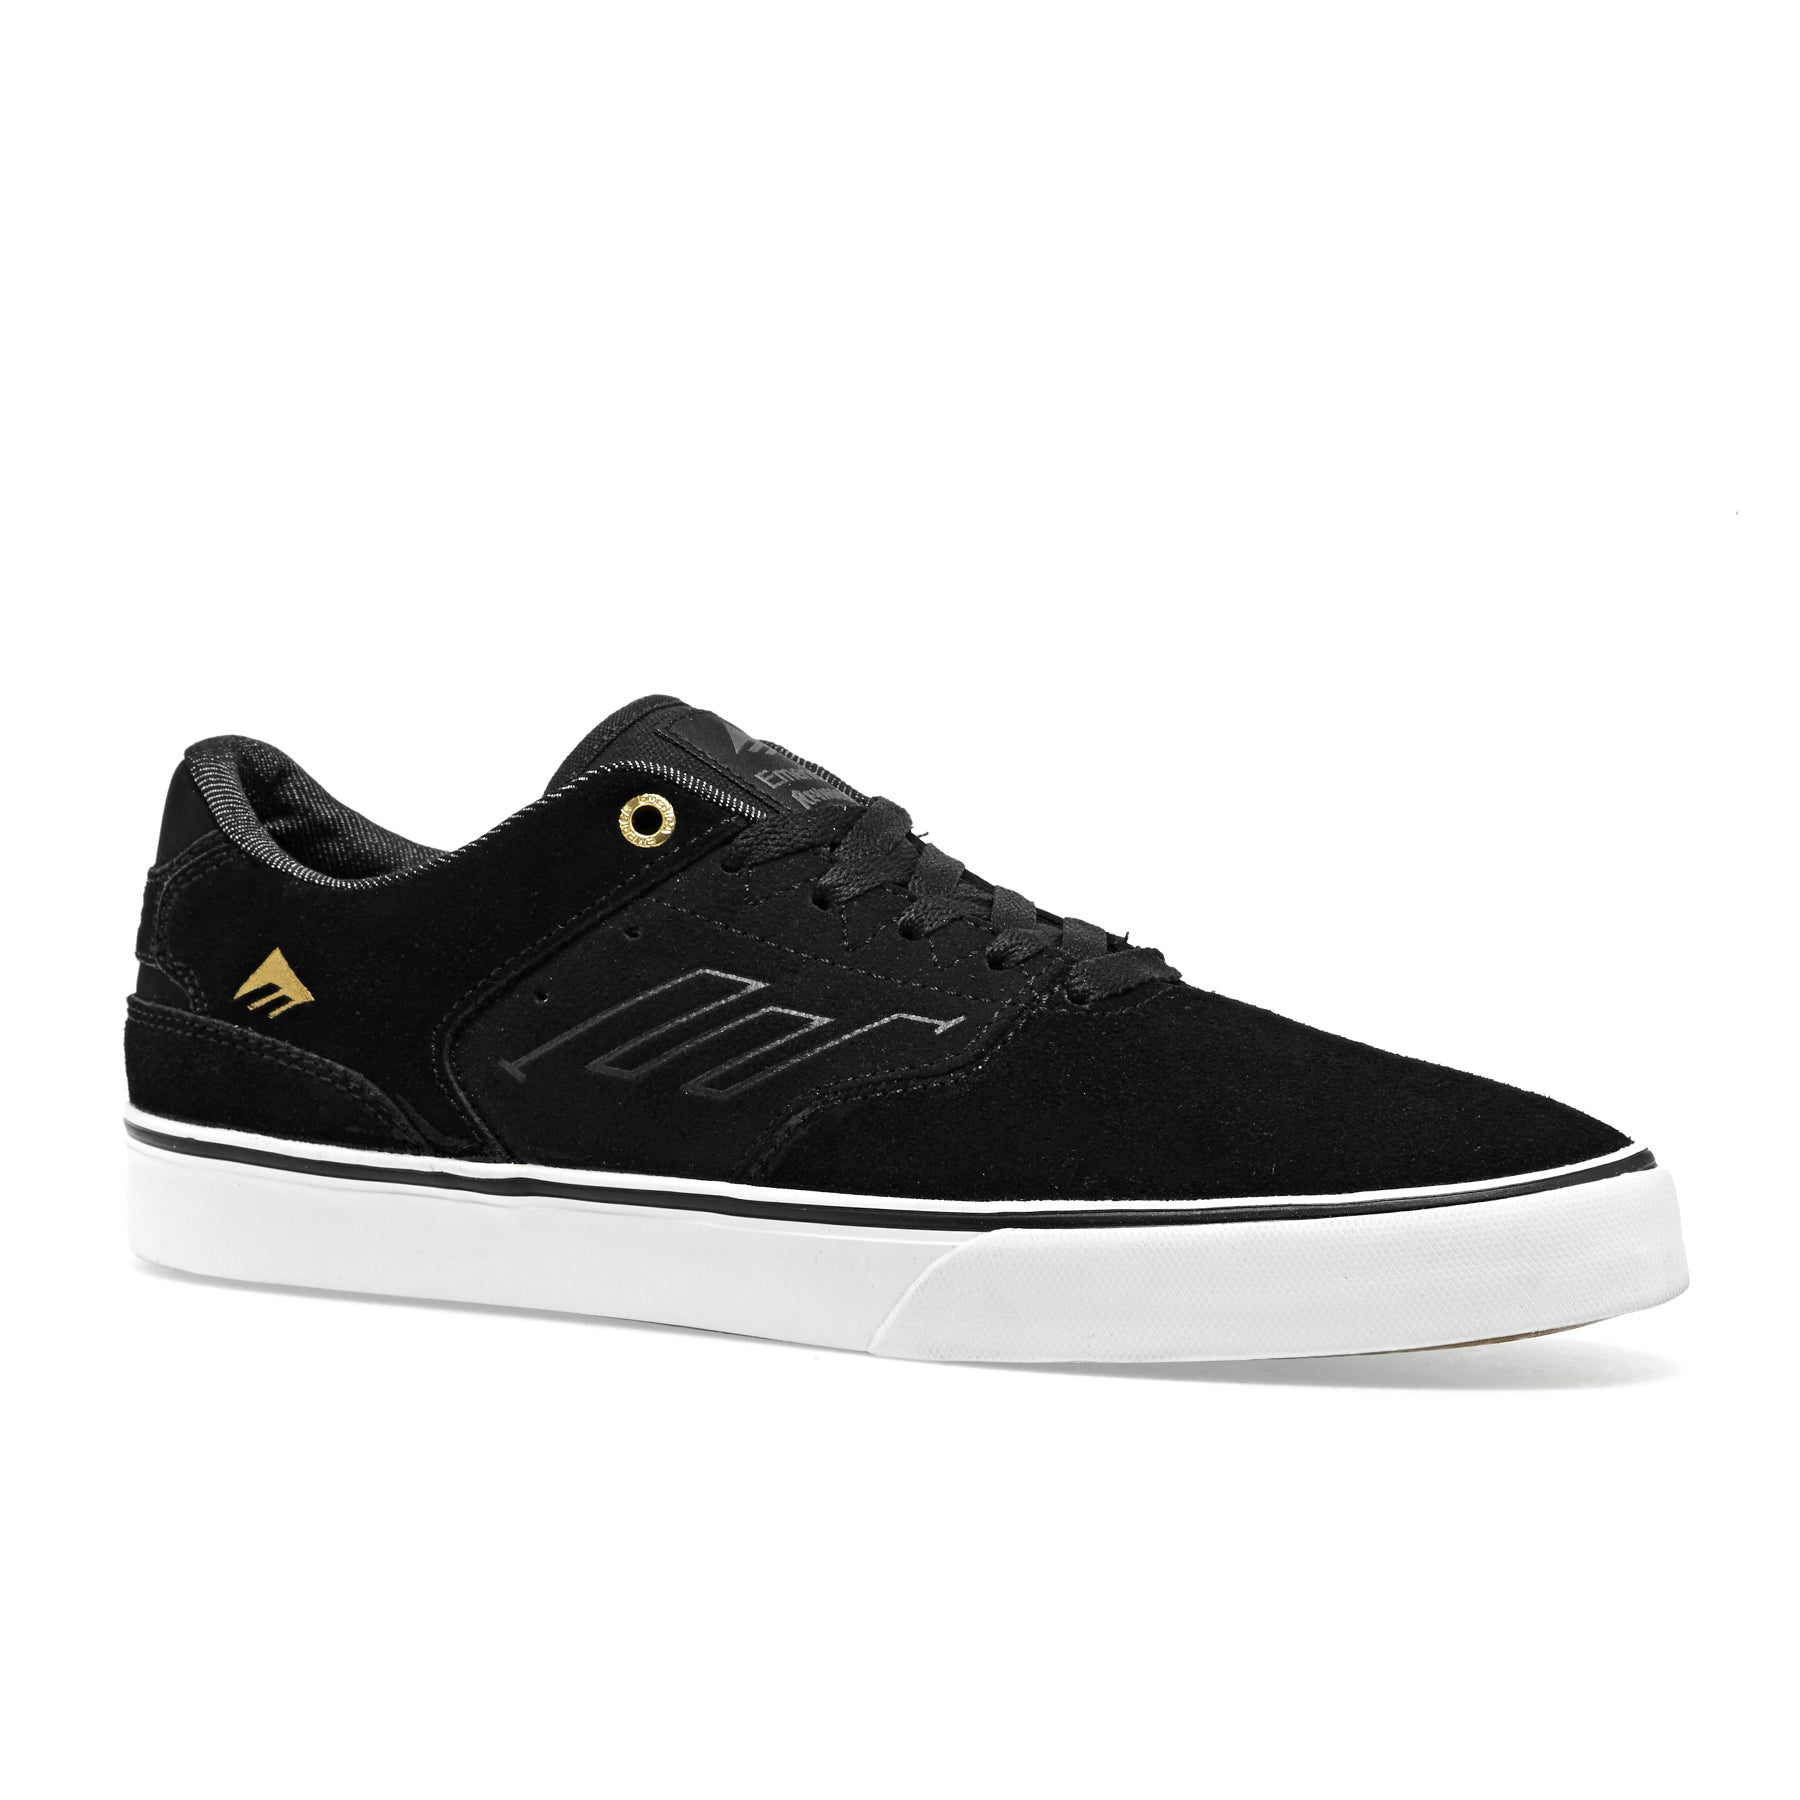 Emerica The Reynolds Low Vulc Shoes - Black Gold White